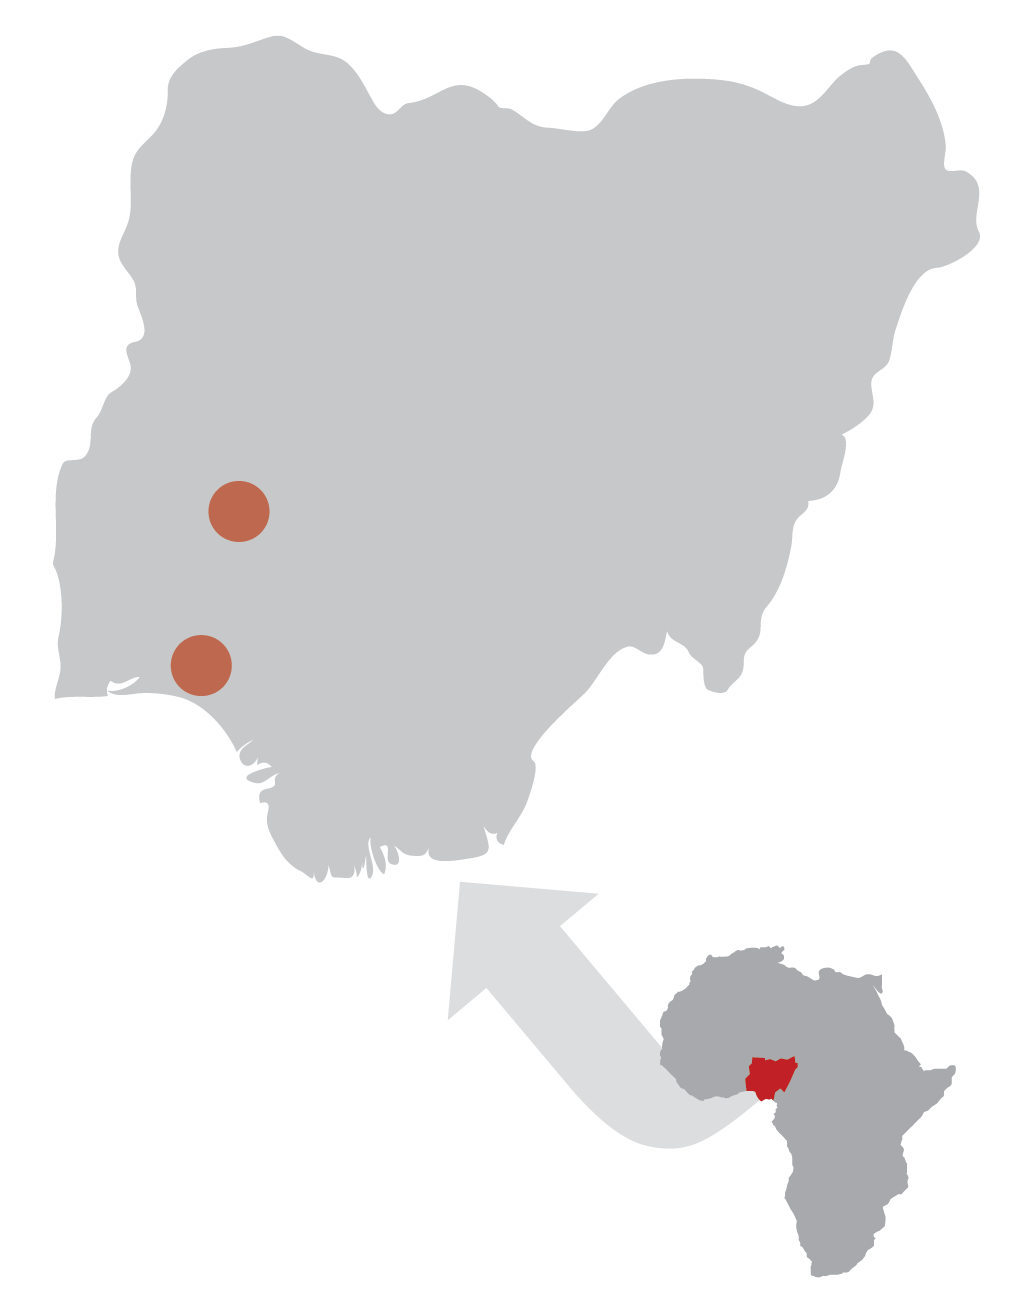 Areas in Nigeria being impacted by Hands at Work